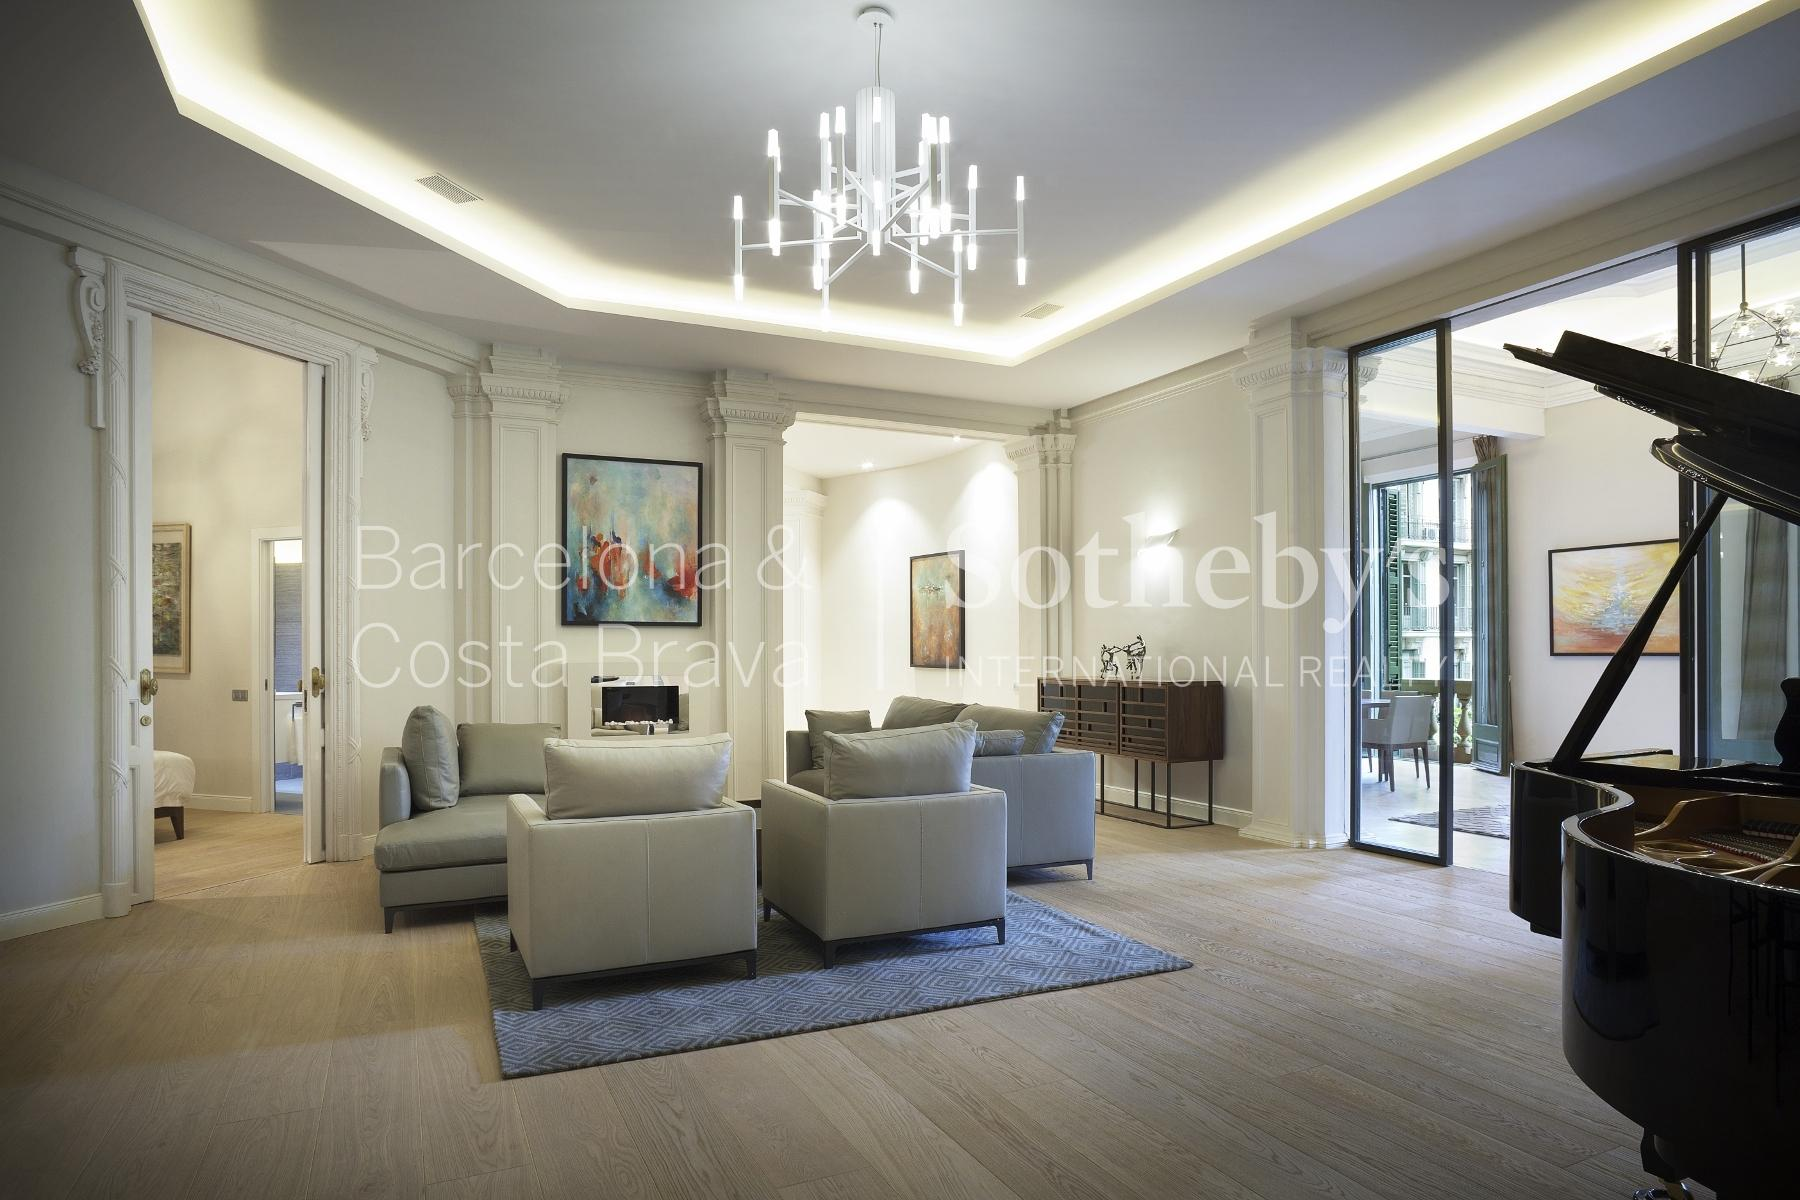 公寓 為 出售 在 Sophisticated Apartment for Sale Eixample, Barcelona City, Barcelona 08007 西班牙